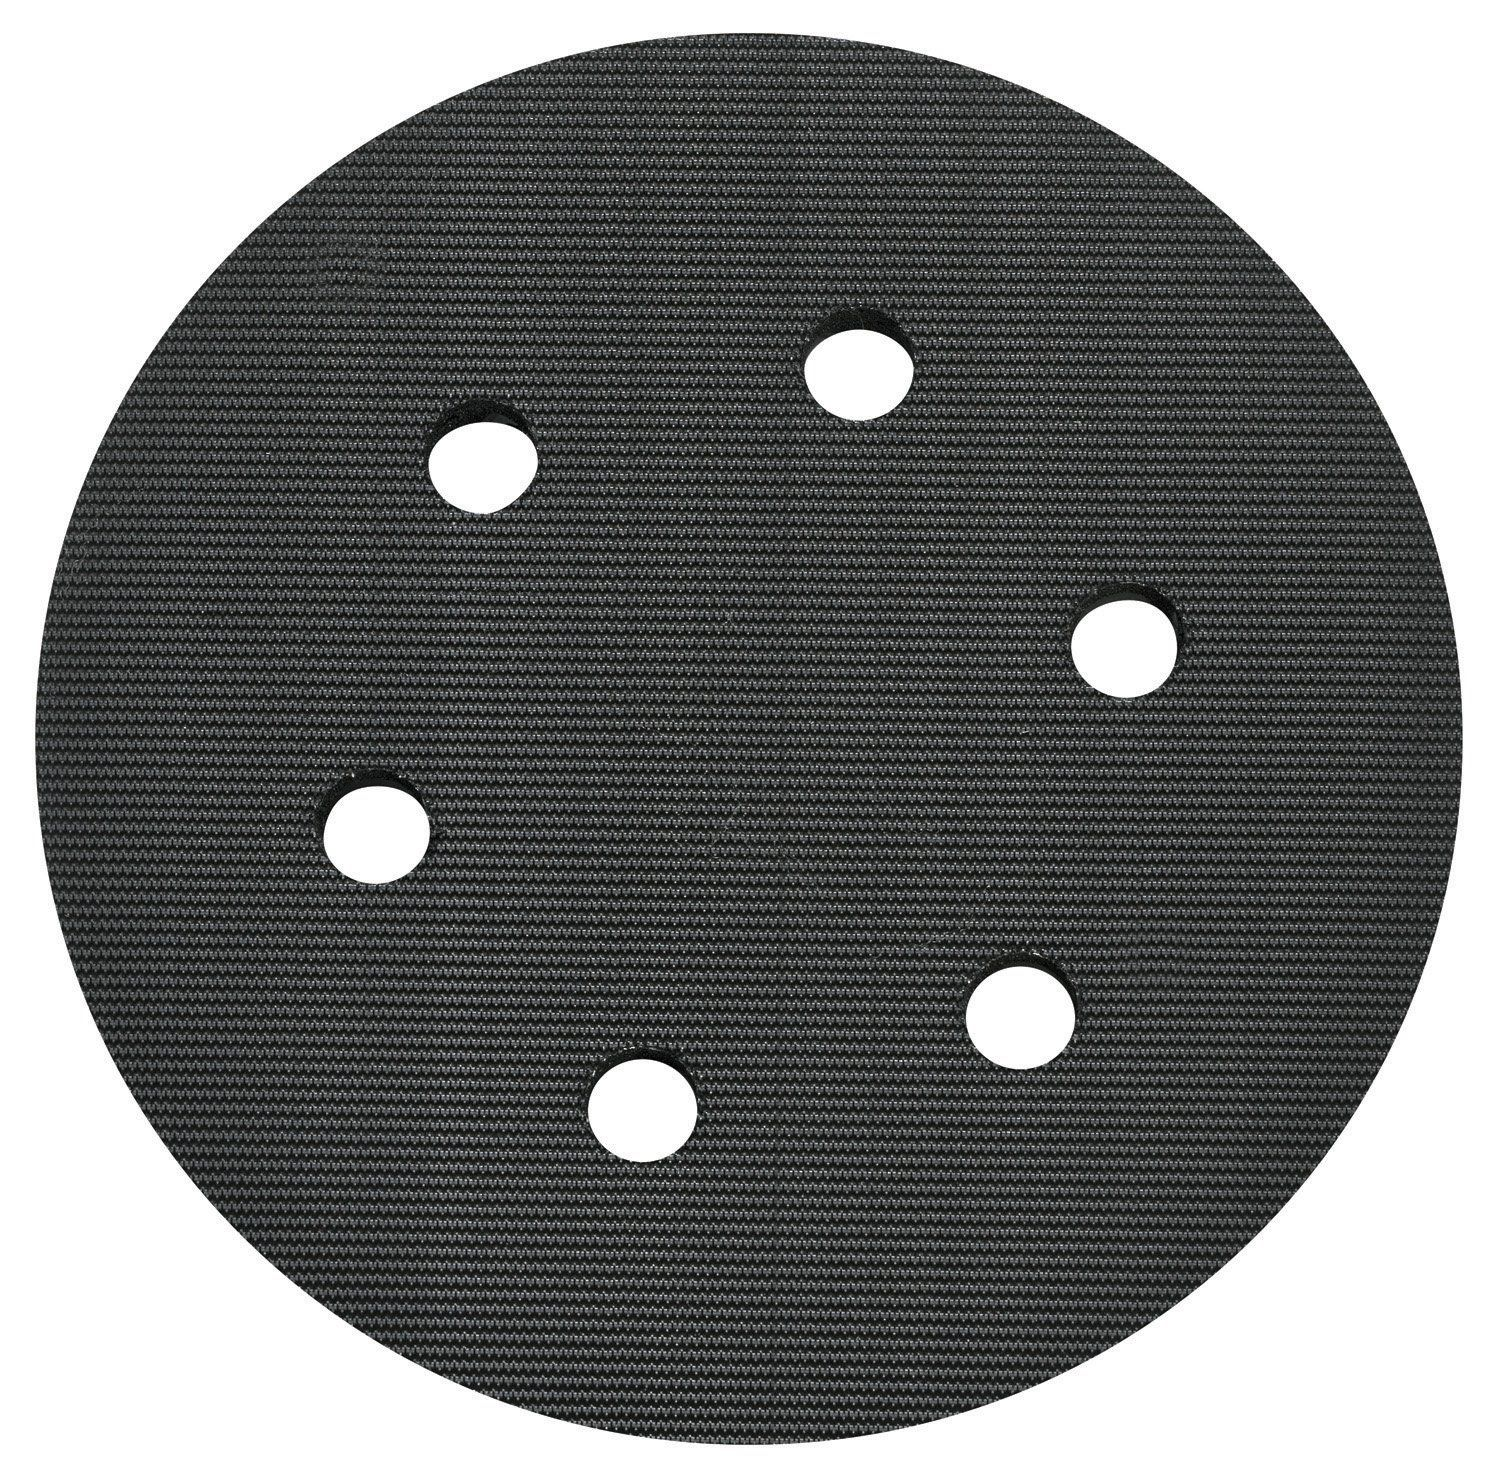 Porter Cable 18002 Contour Hook And Loop Pad 6 Inch With Images Porter Cable